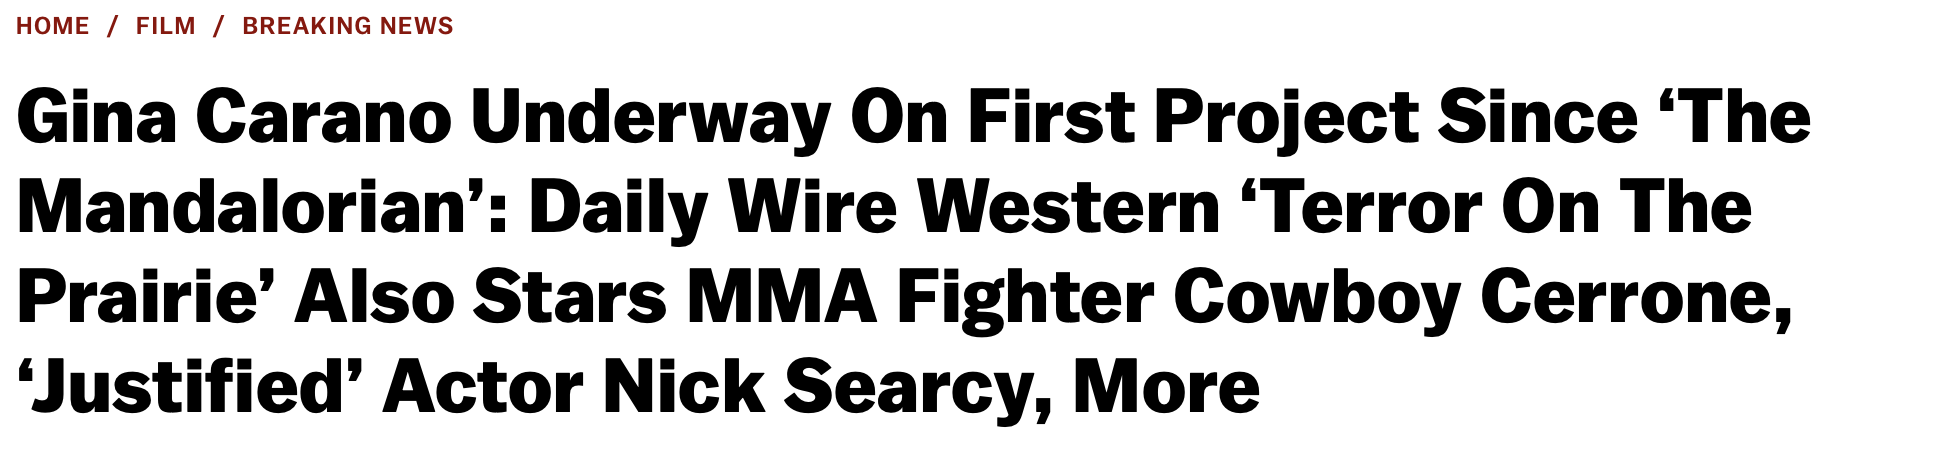 Gina Carano Underway On First Project Since 'The Mandalorian': Daily Wire Western 'Terror On The Prairie' Also Stars MMA Fighter Cowboy Cerrone, 'Justified' Actor Nick Searcy